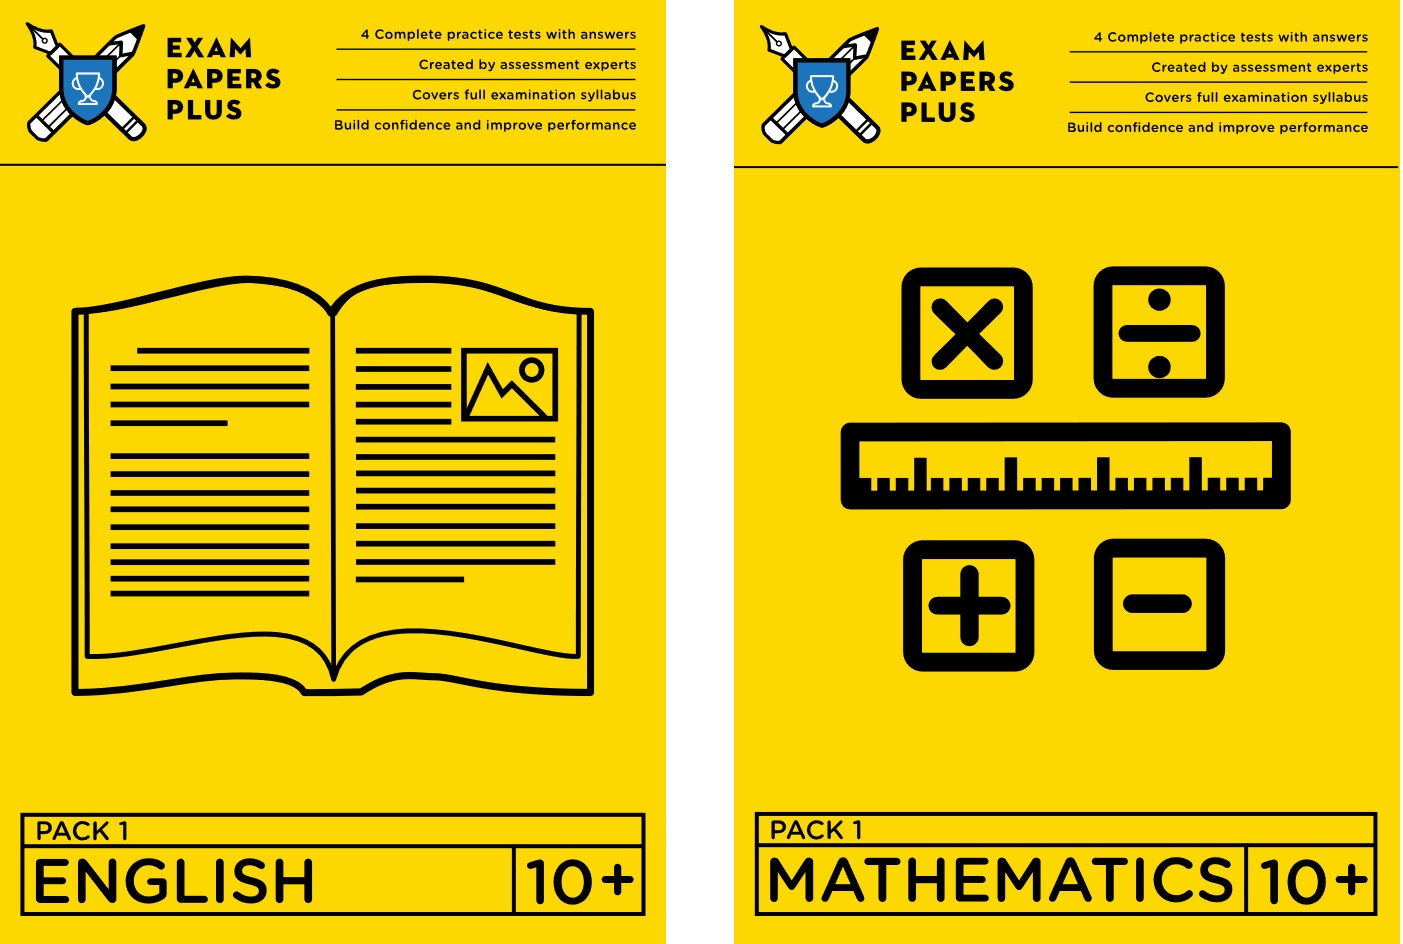 Images of 10 Plus exam papers